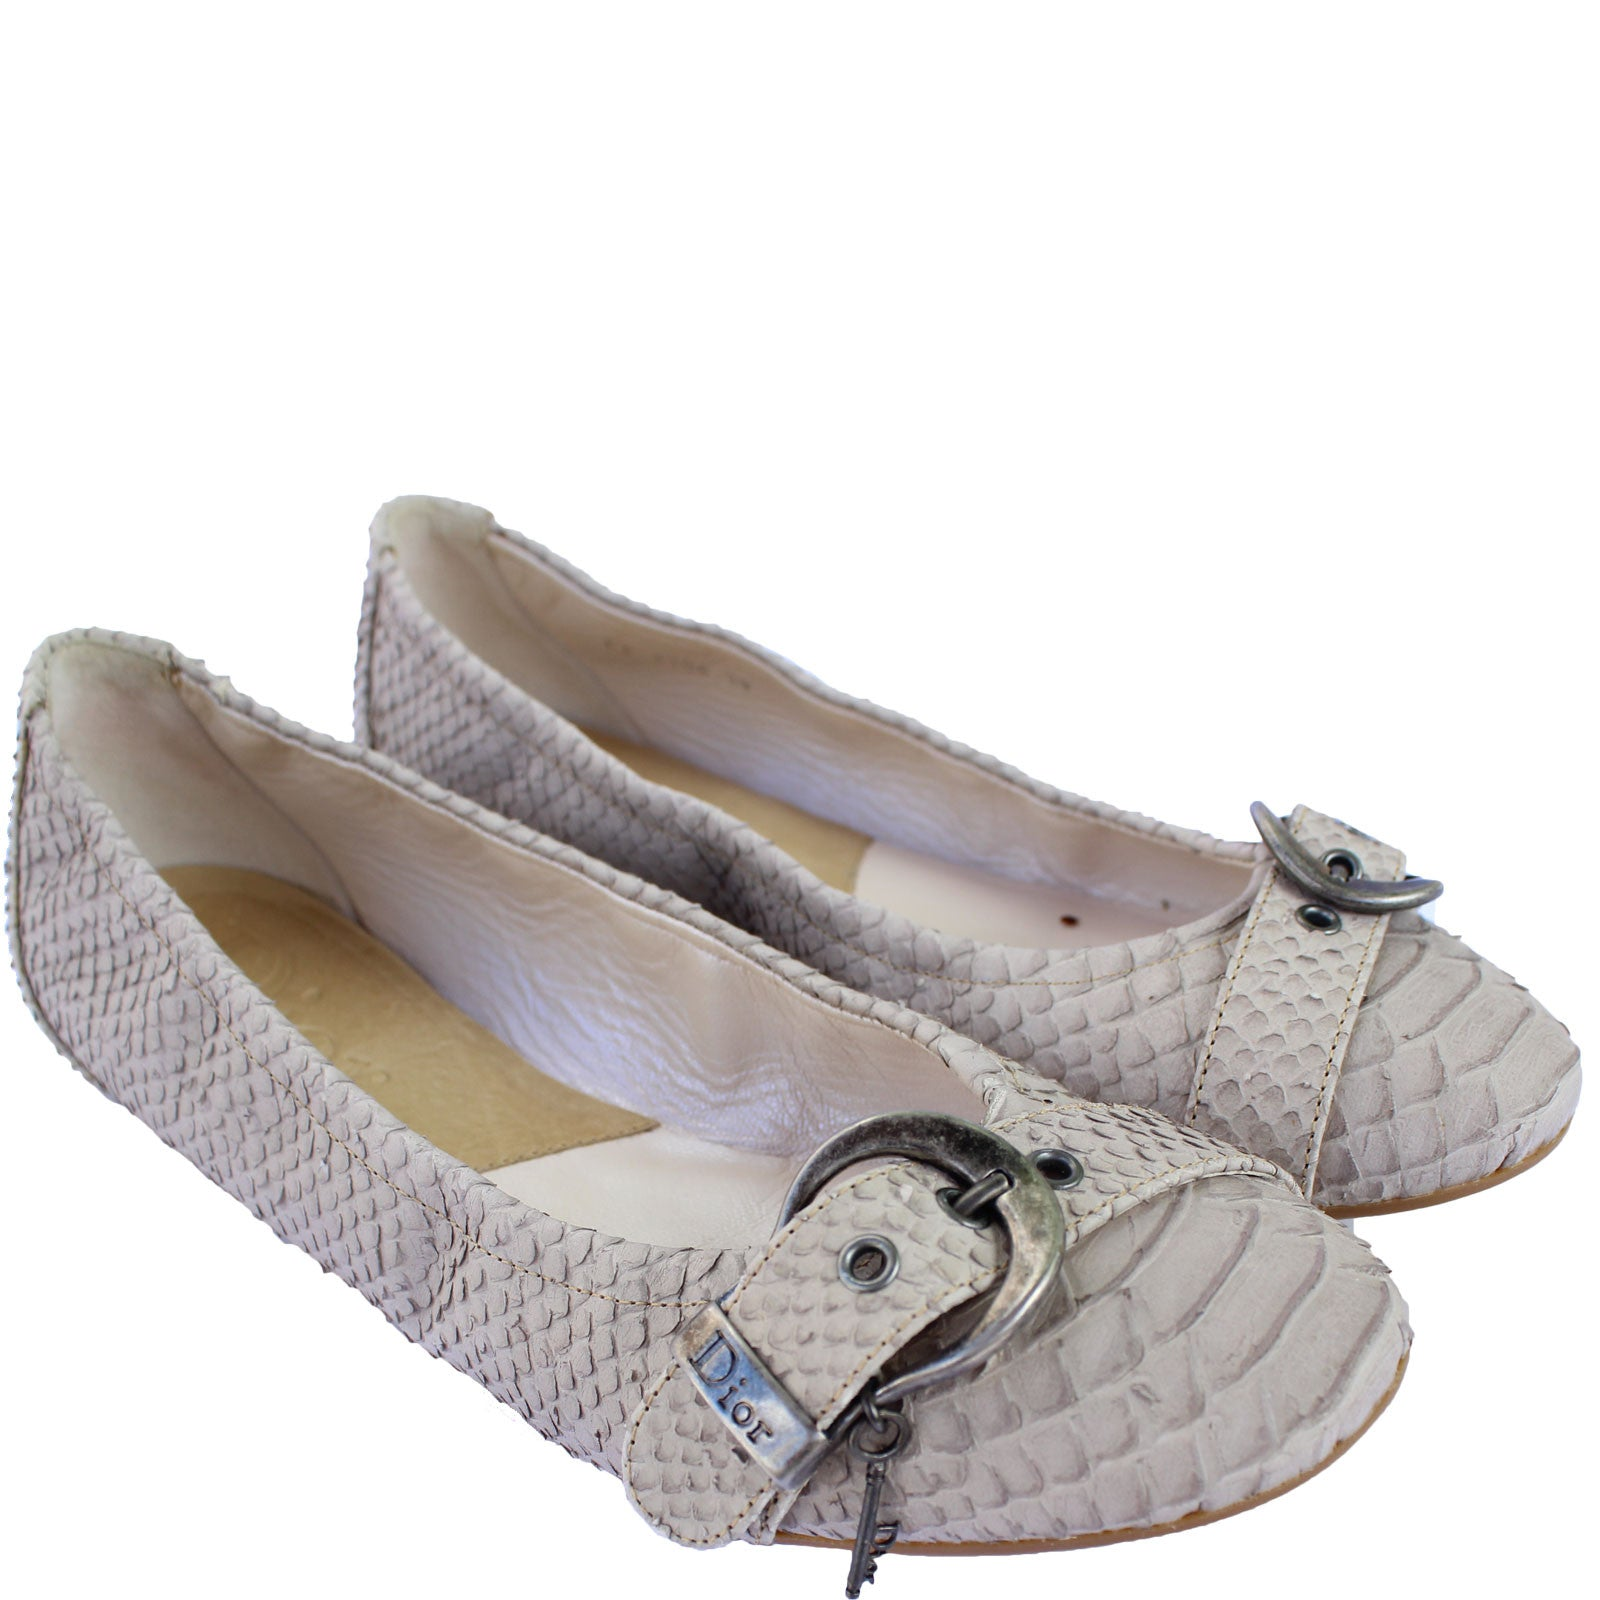 Christian Dior Python Buckle Flats hot sale cheap price new styles cheap online clearance for sale sale fake buy cheap eastbay sbhuFKIV